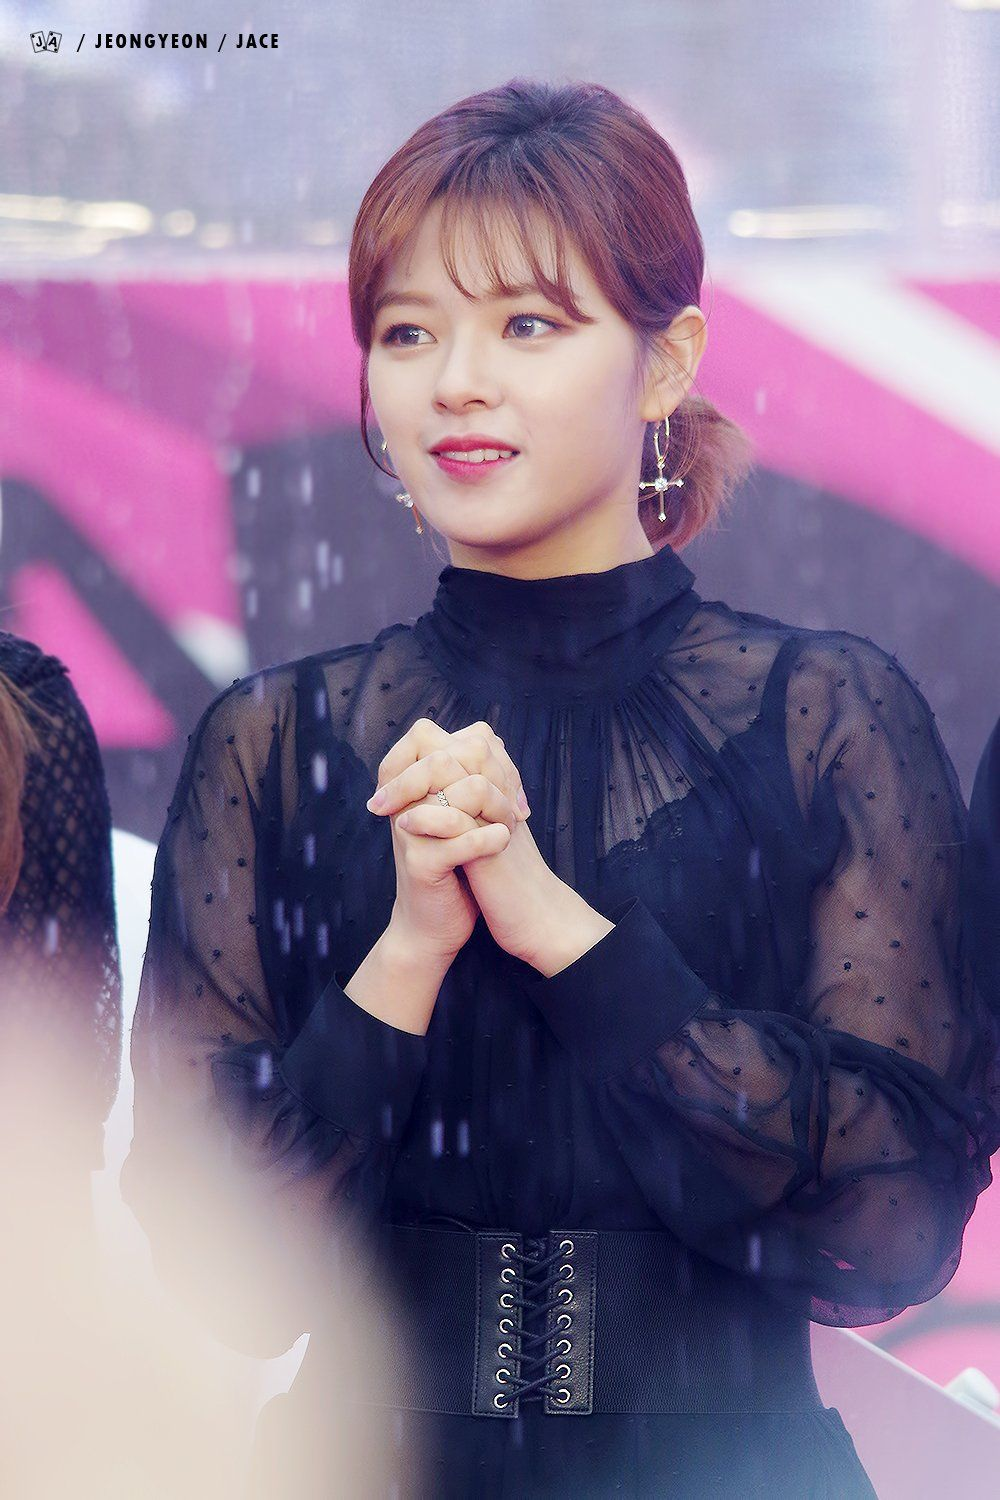 Twice S Jeongyeon Wows Fans With Pretty Feminine Styling